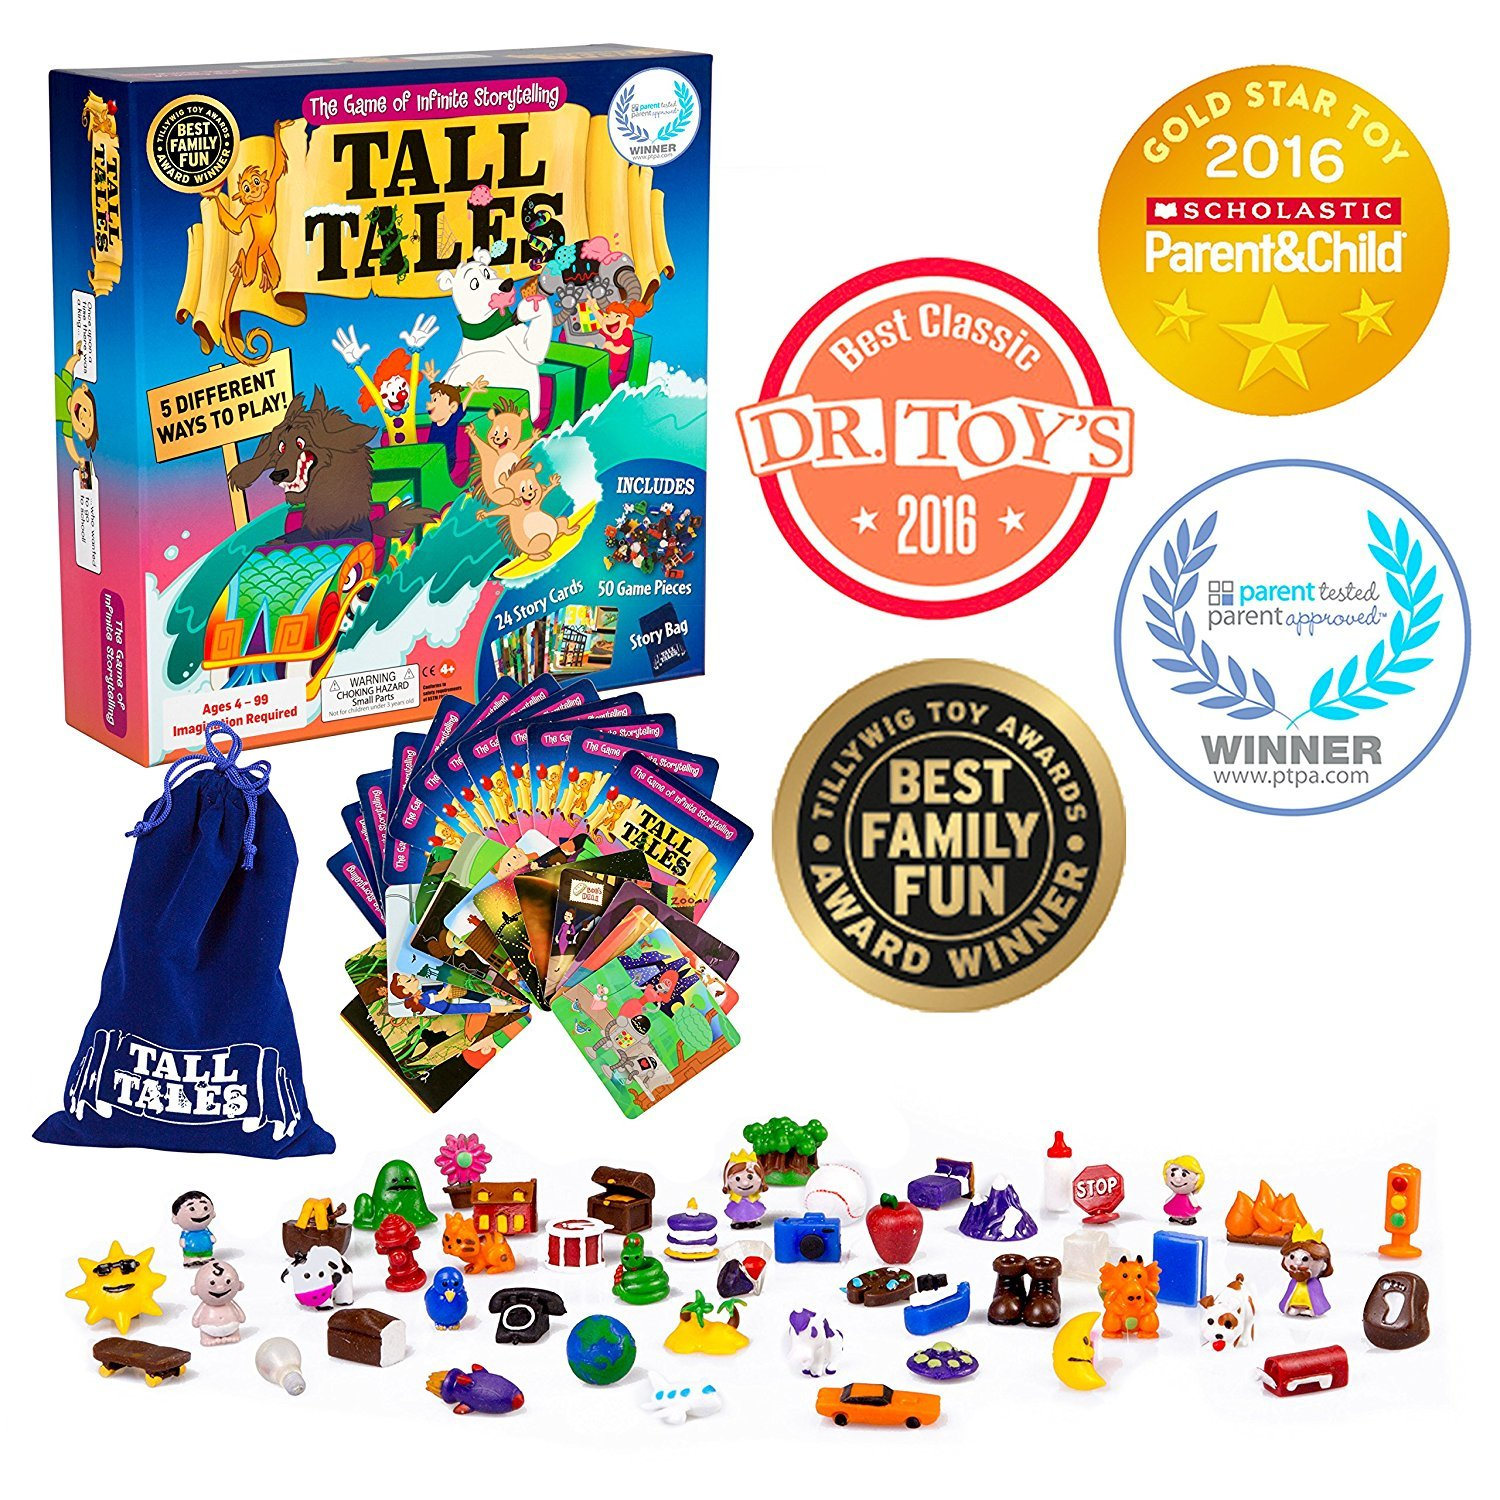 The Family Game of Infinite Storytelling Tall Tales Story Telling Board Game